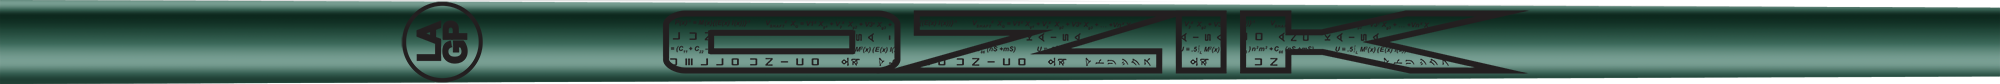 Ozik White Tie: Masters Green Black Gloss - Wood 60 R